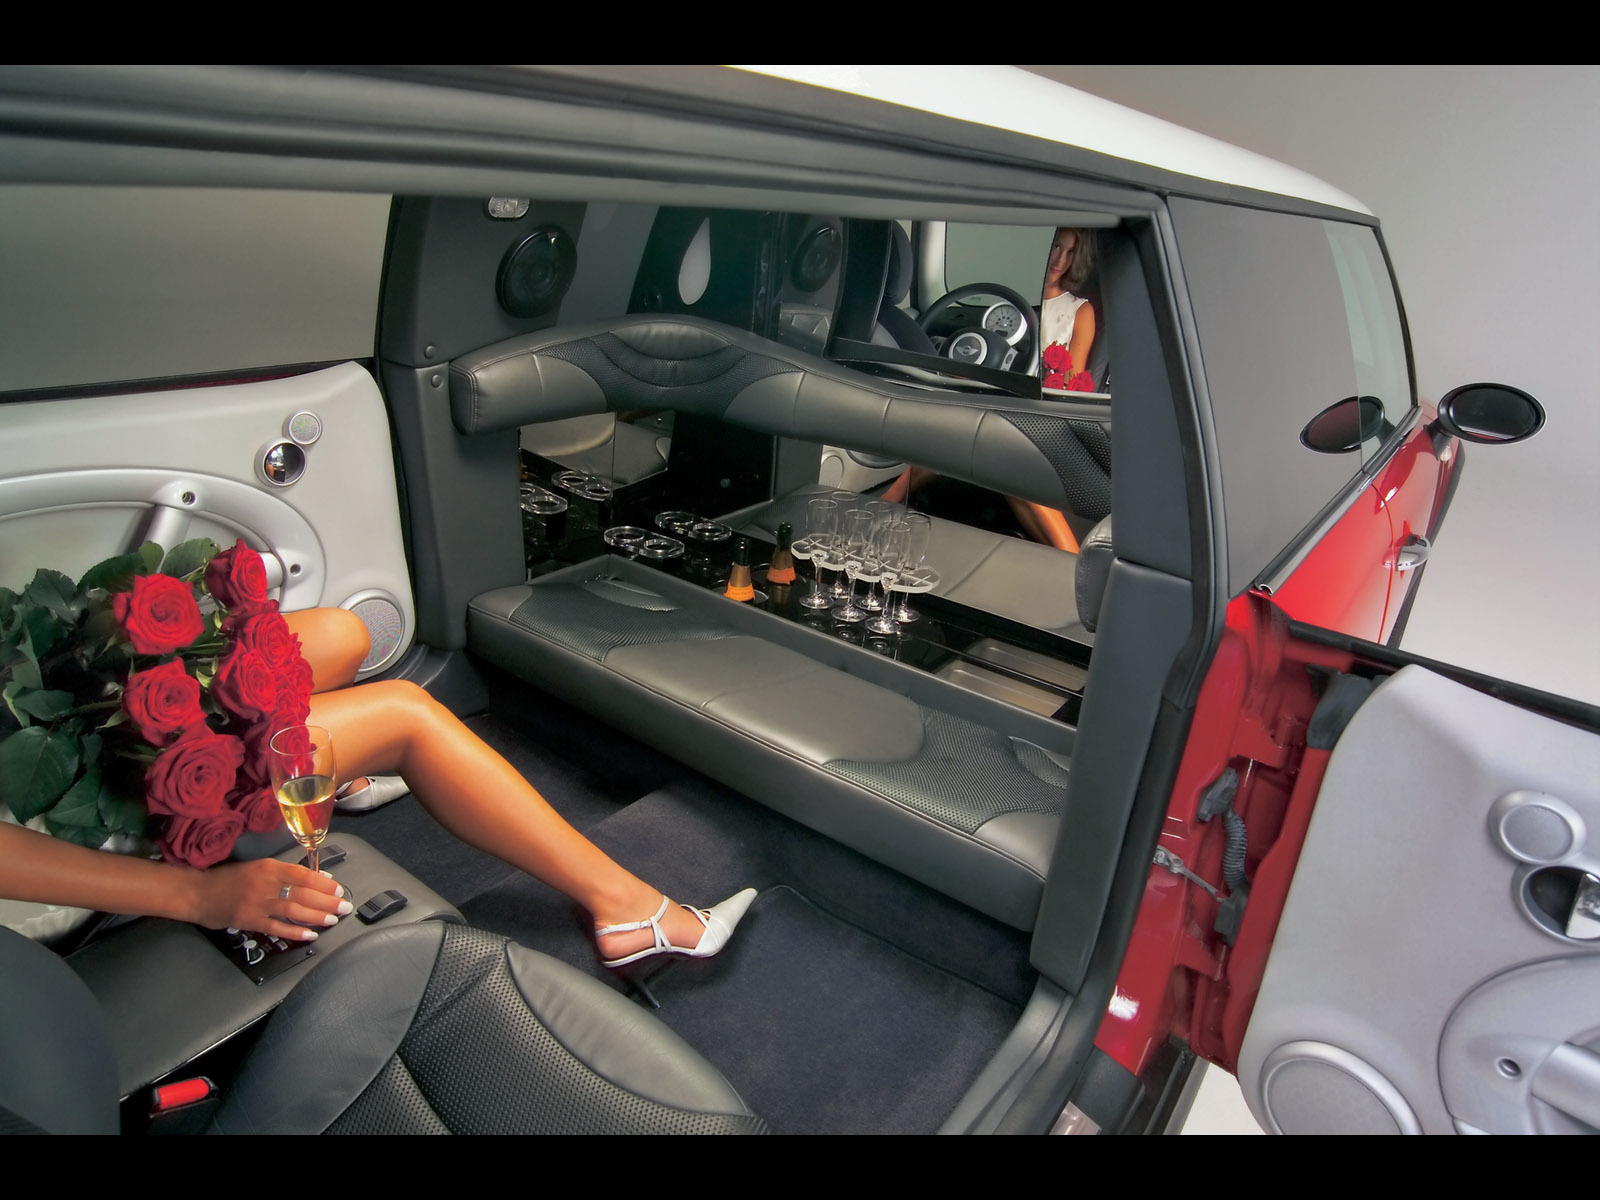 Mini XXL Stretch Limo - Woman with Roses - 1600x1200 Wallpaper